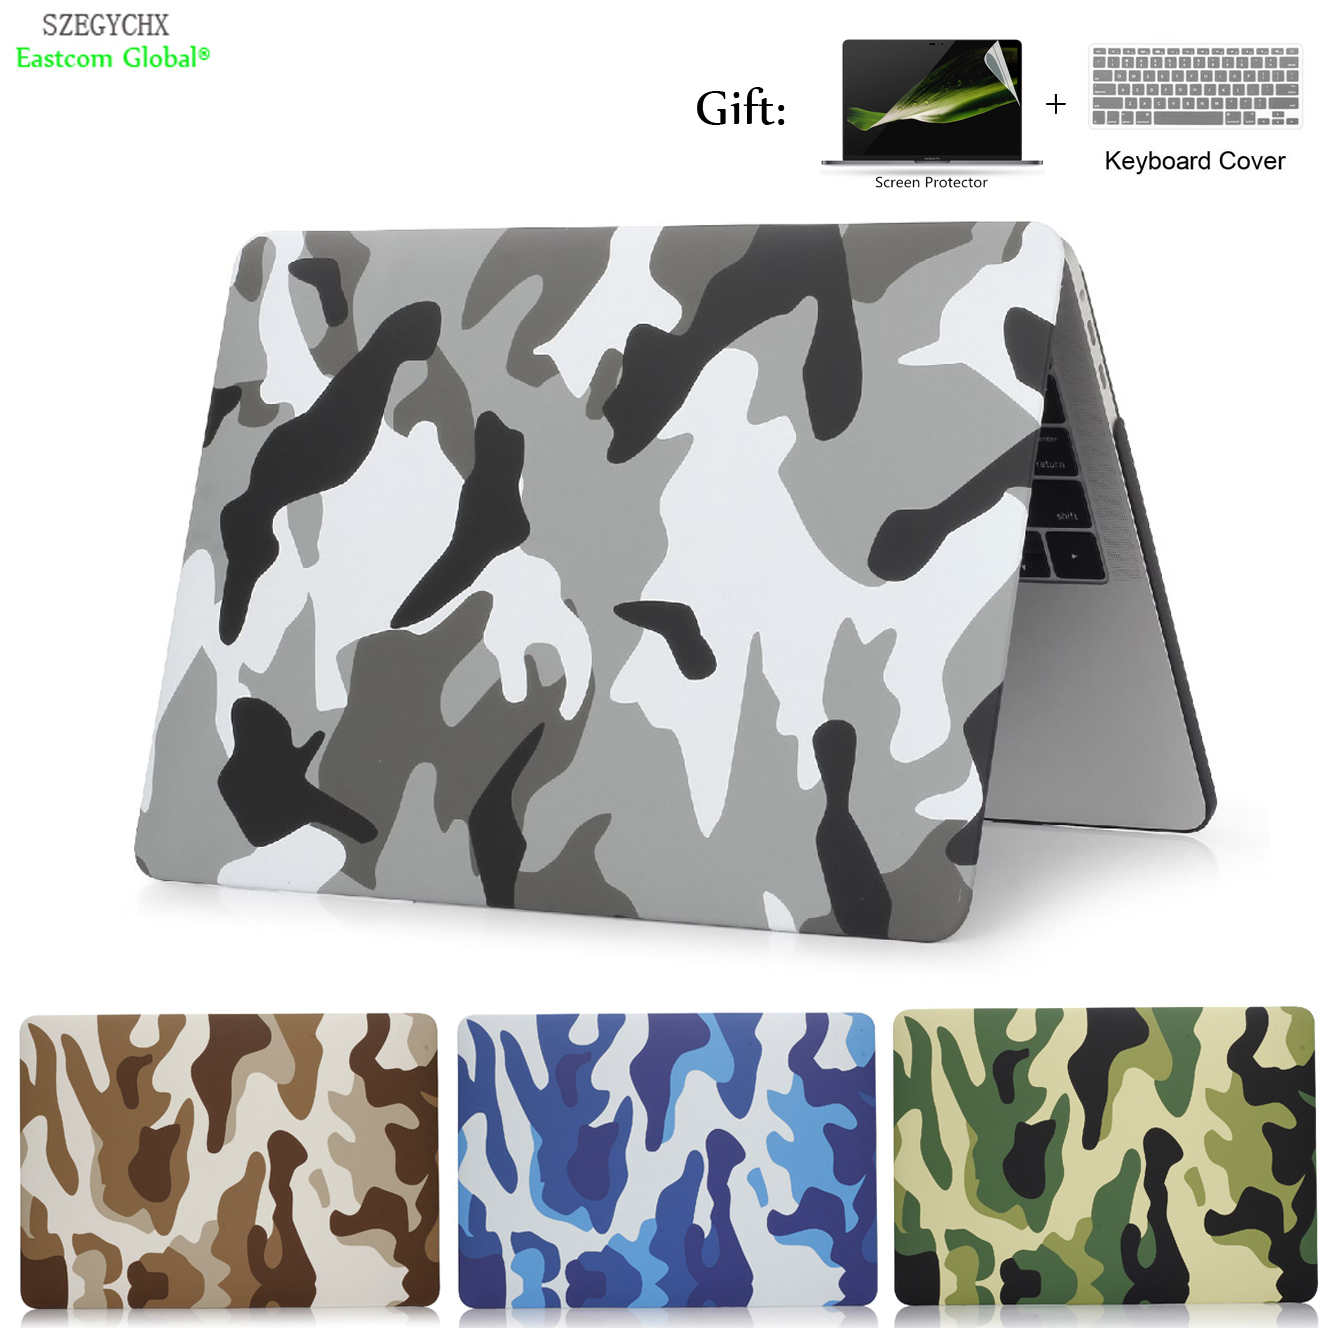 Camouflage shell taske til MacBook Air 13 11 Pro Retina 12 13,3 15 touch bar For Macbook New Air 13 A1932 2018 sag